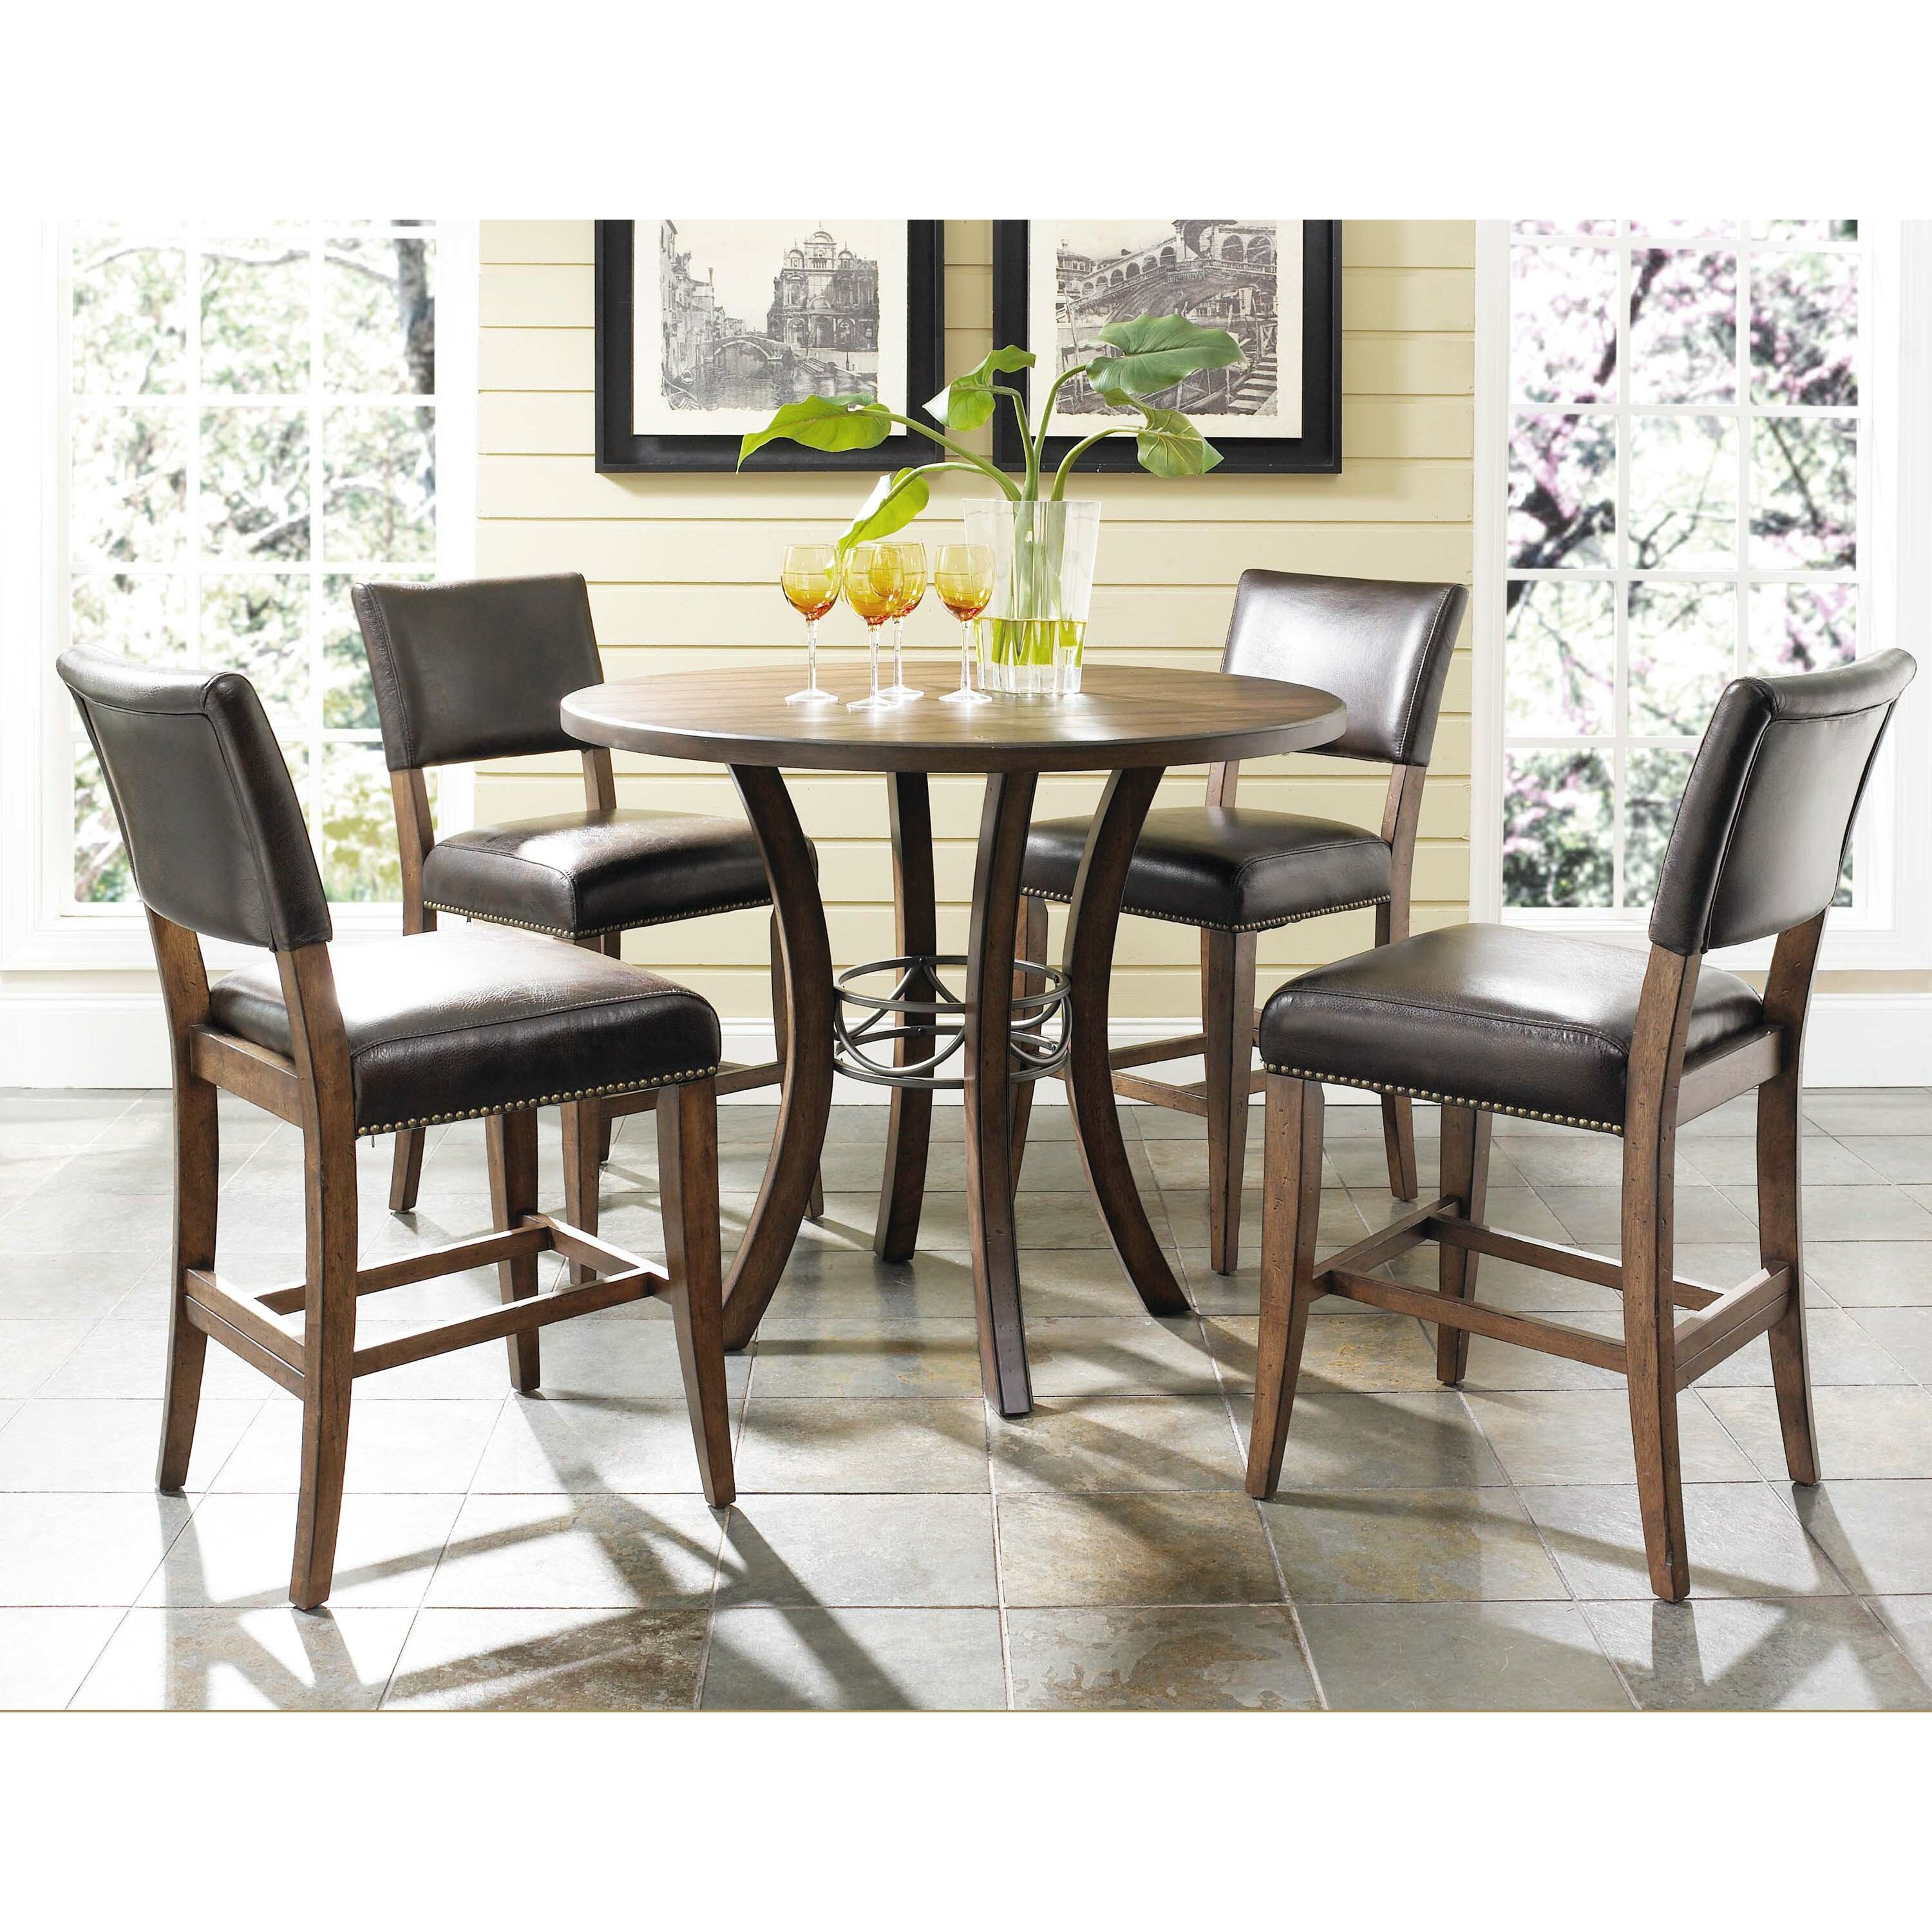 Hillsdale Cameron 5 Piece Counter Height Dining Set